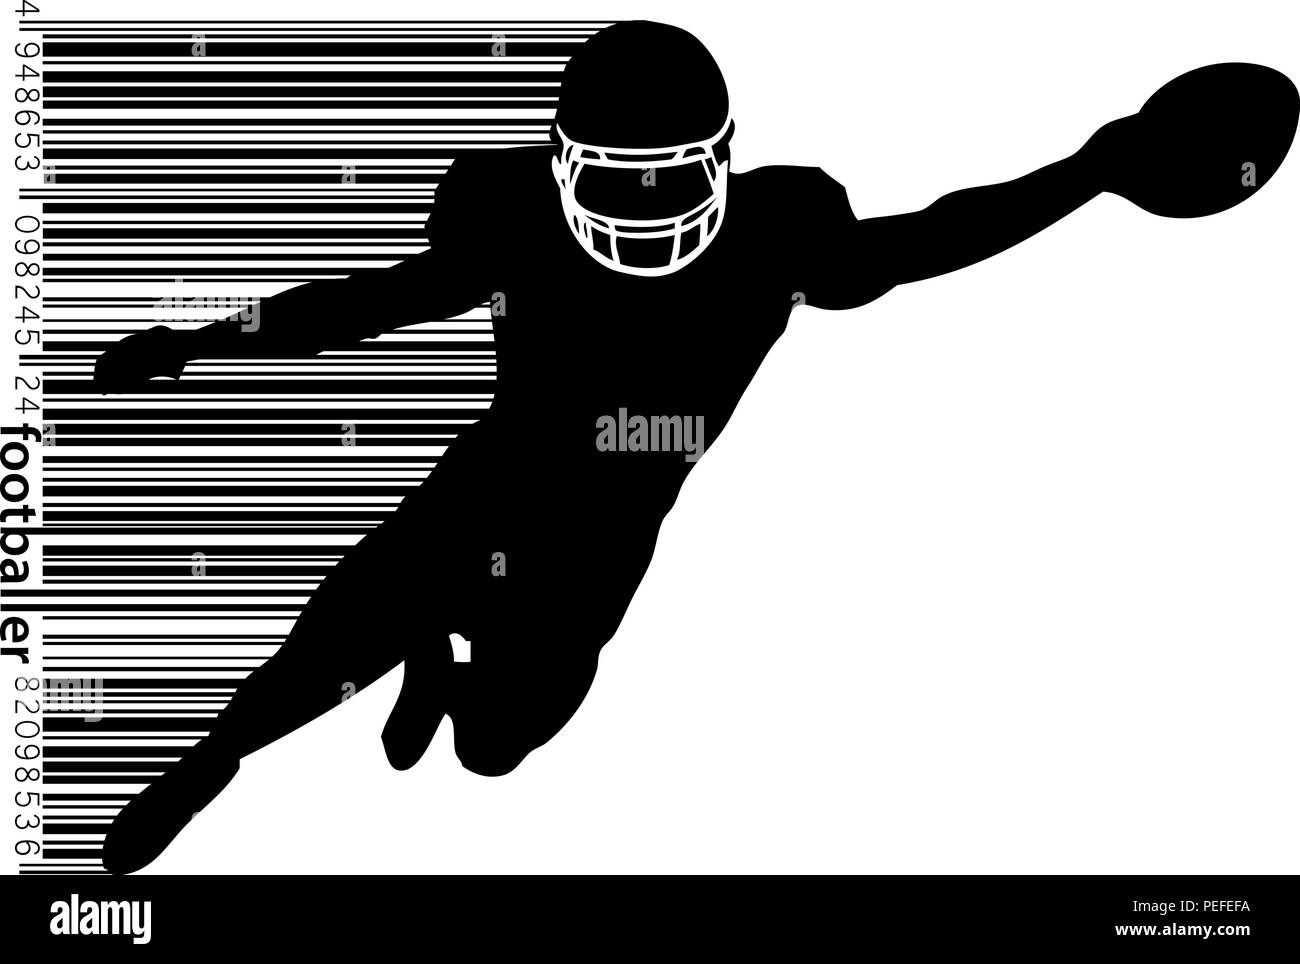 silhouette of a football player and barcode. Rugby. American footballer Stock Vector